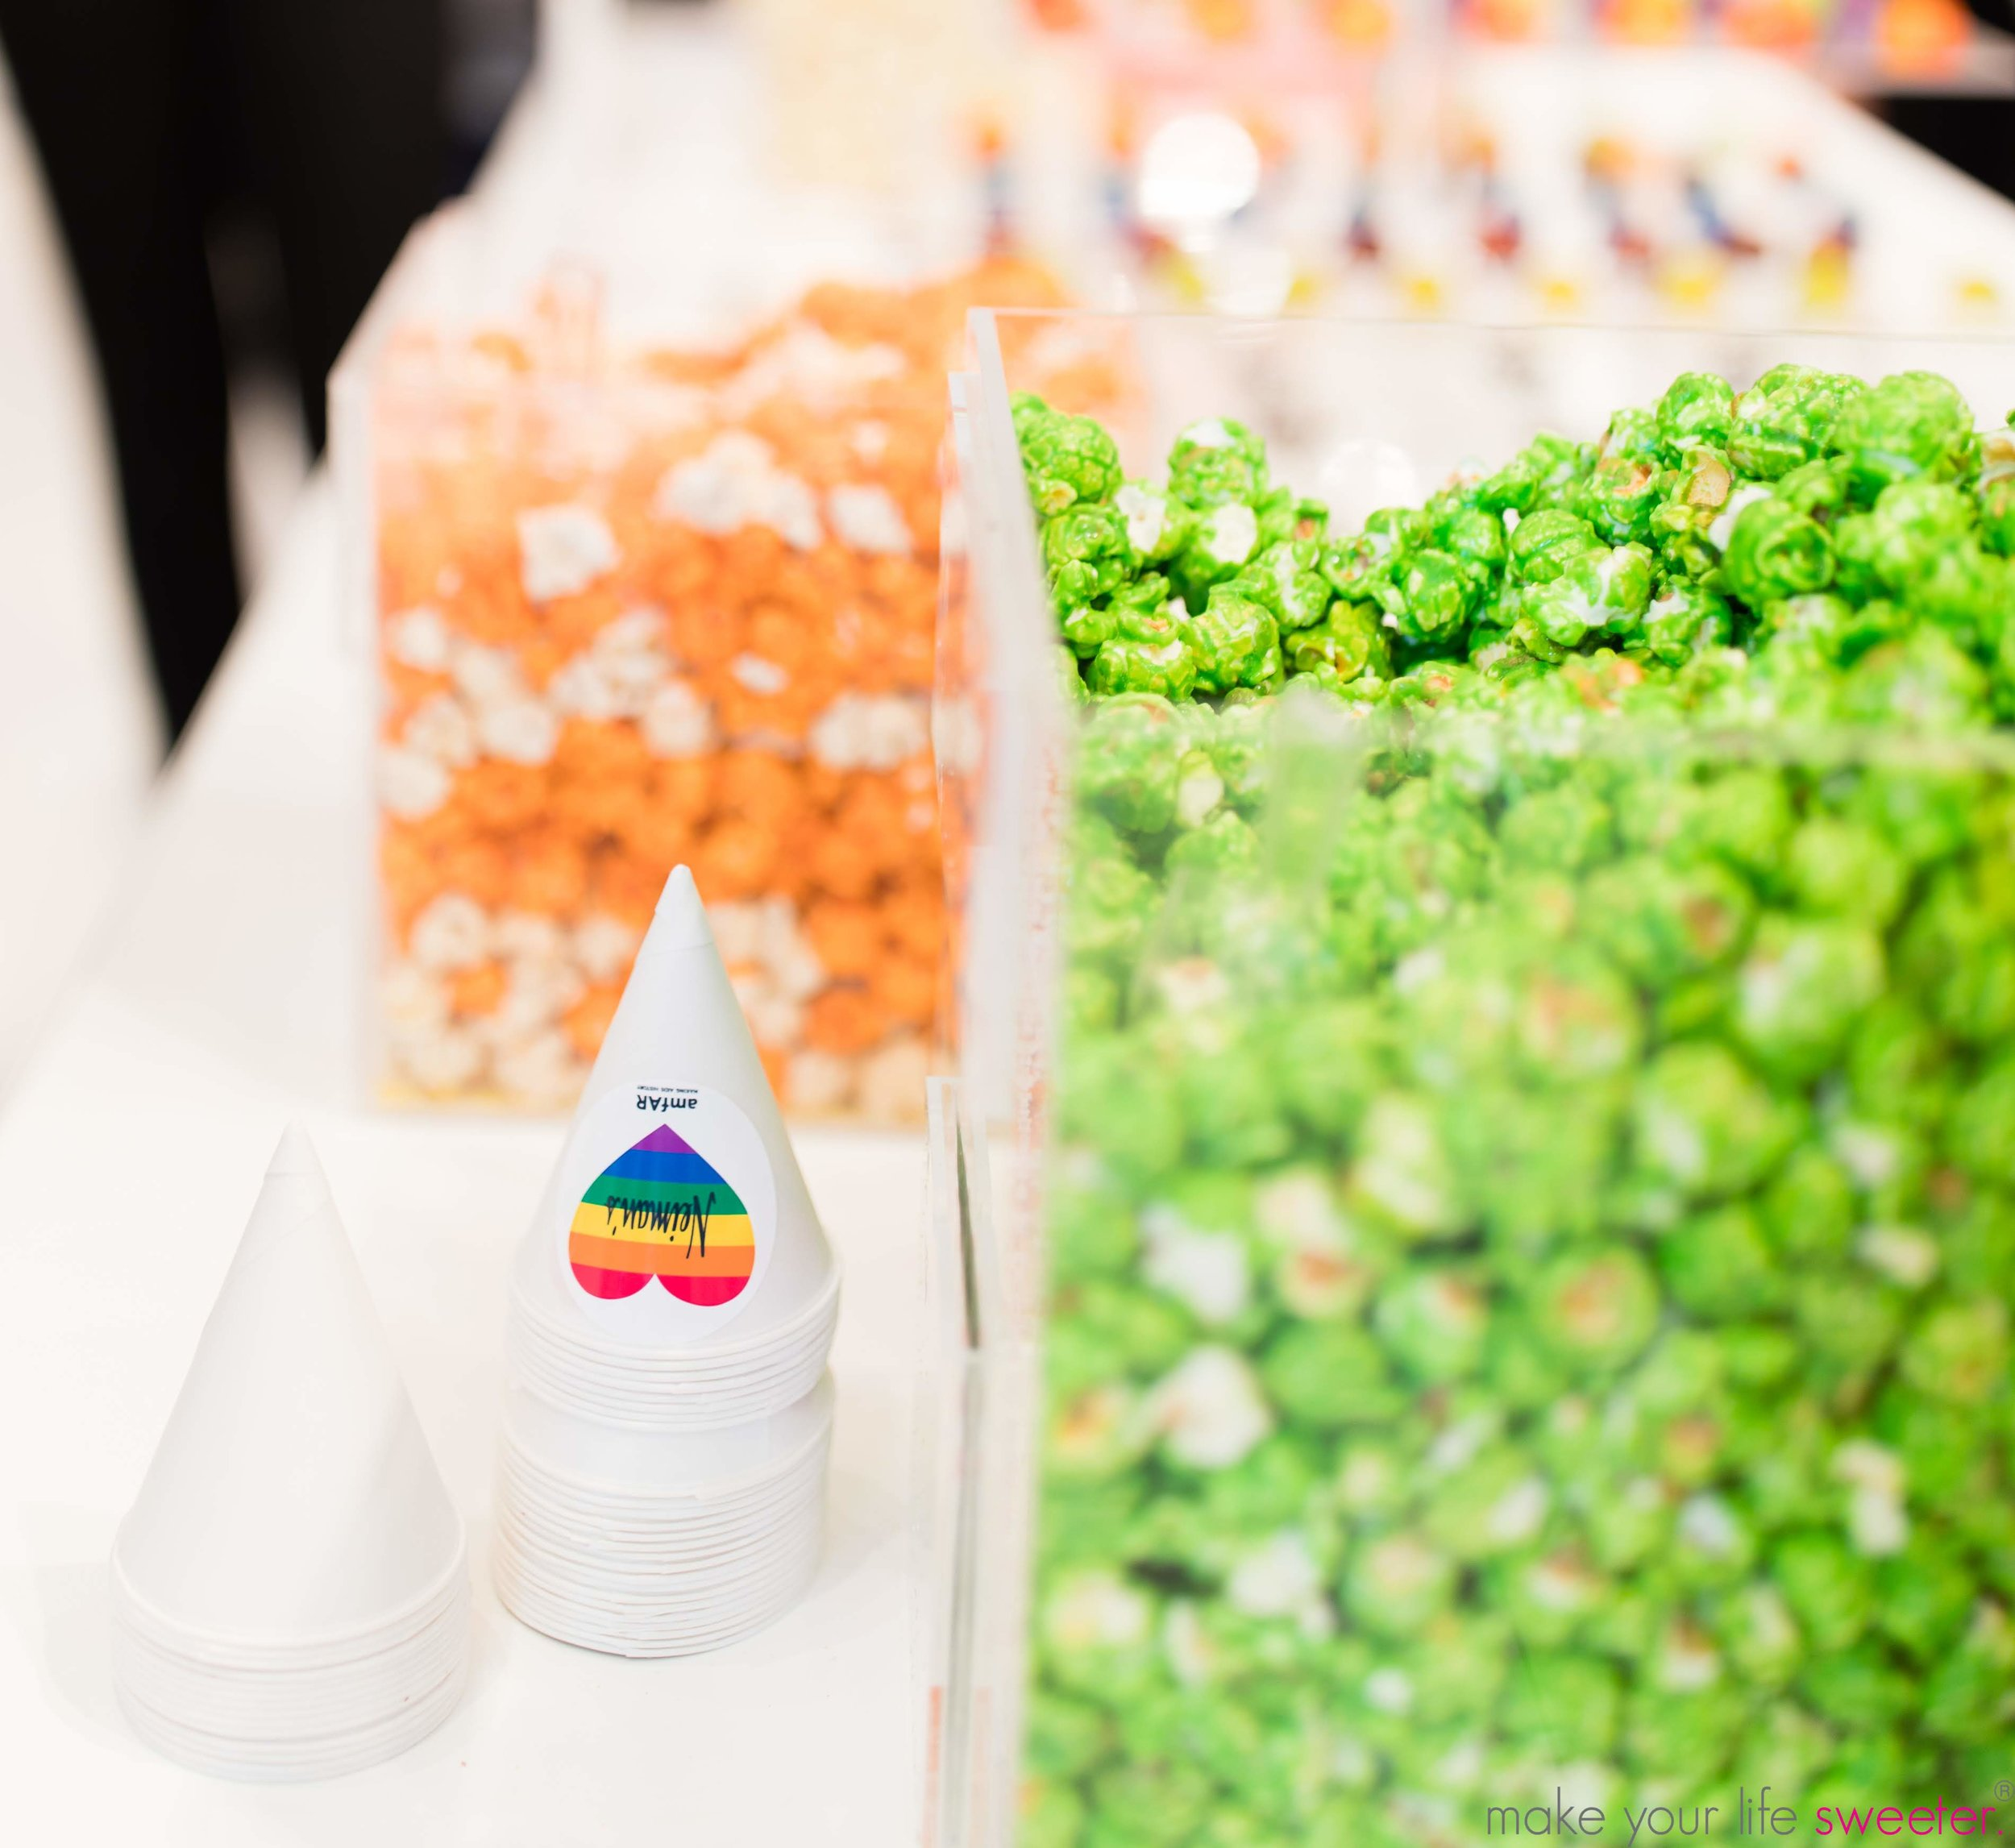 Make Your Life Sweeter Events - Neiman Marcus Hudson Yards Pride Event - Customized Neiman Marcus HotPoppin Gourmet Popcorn Bar